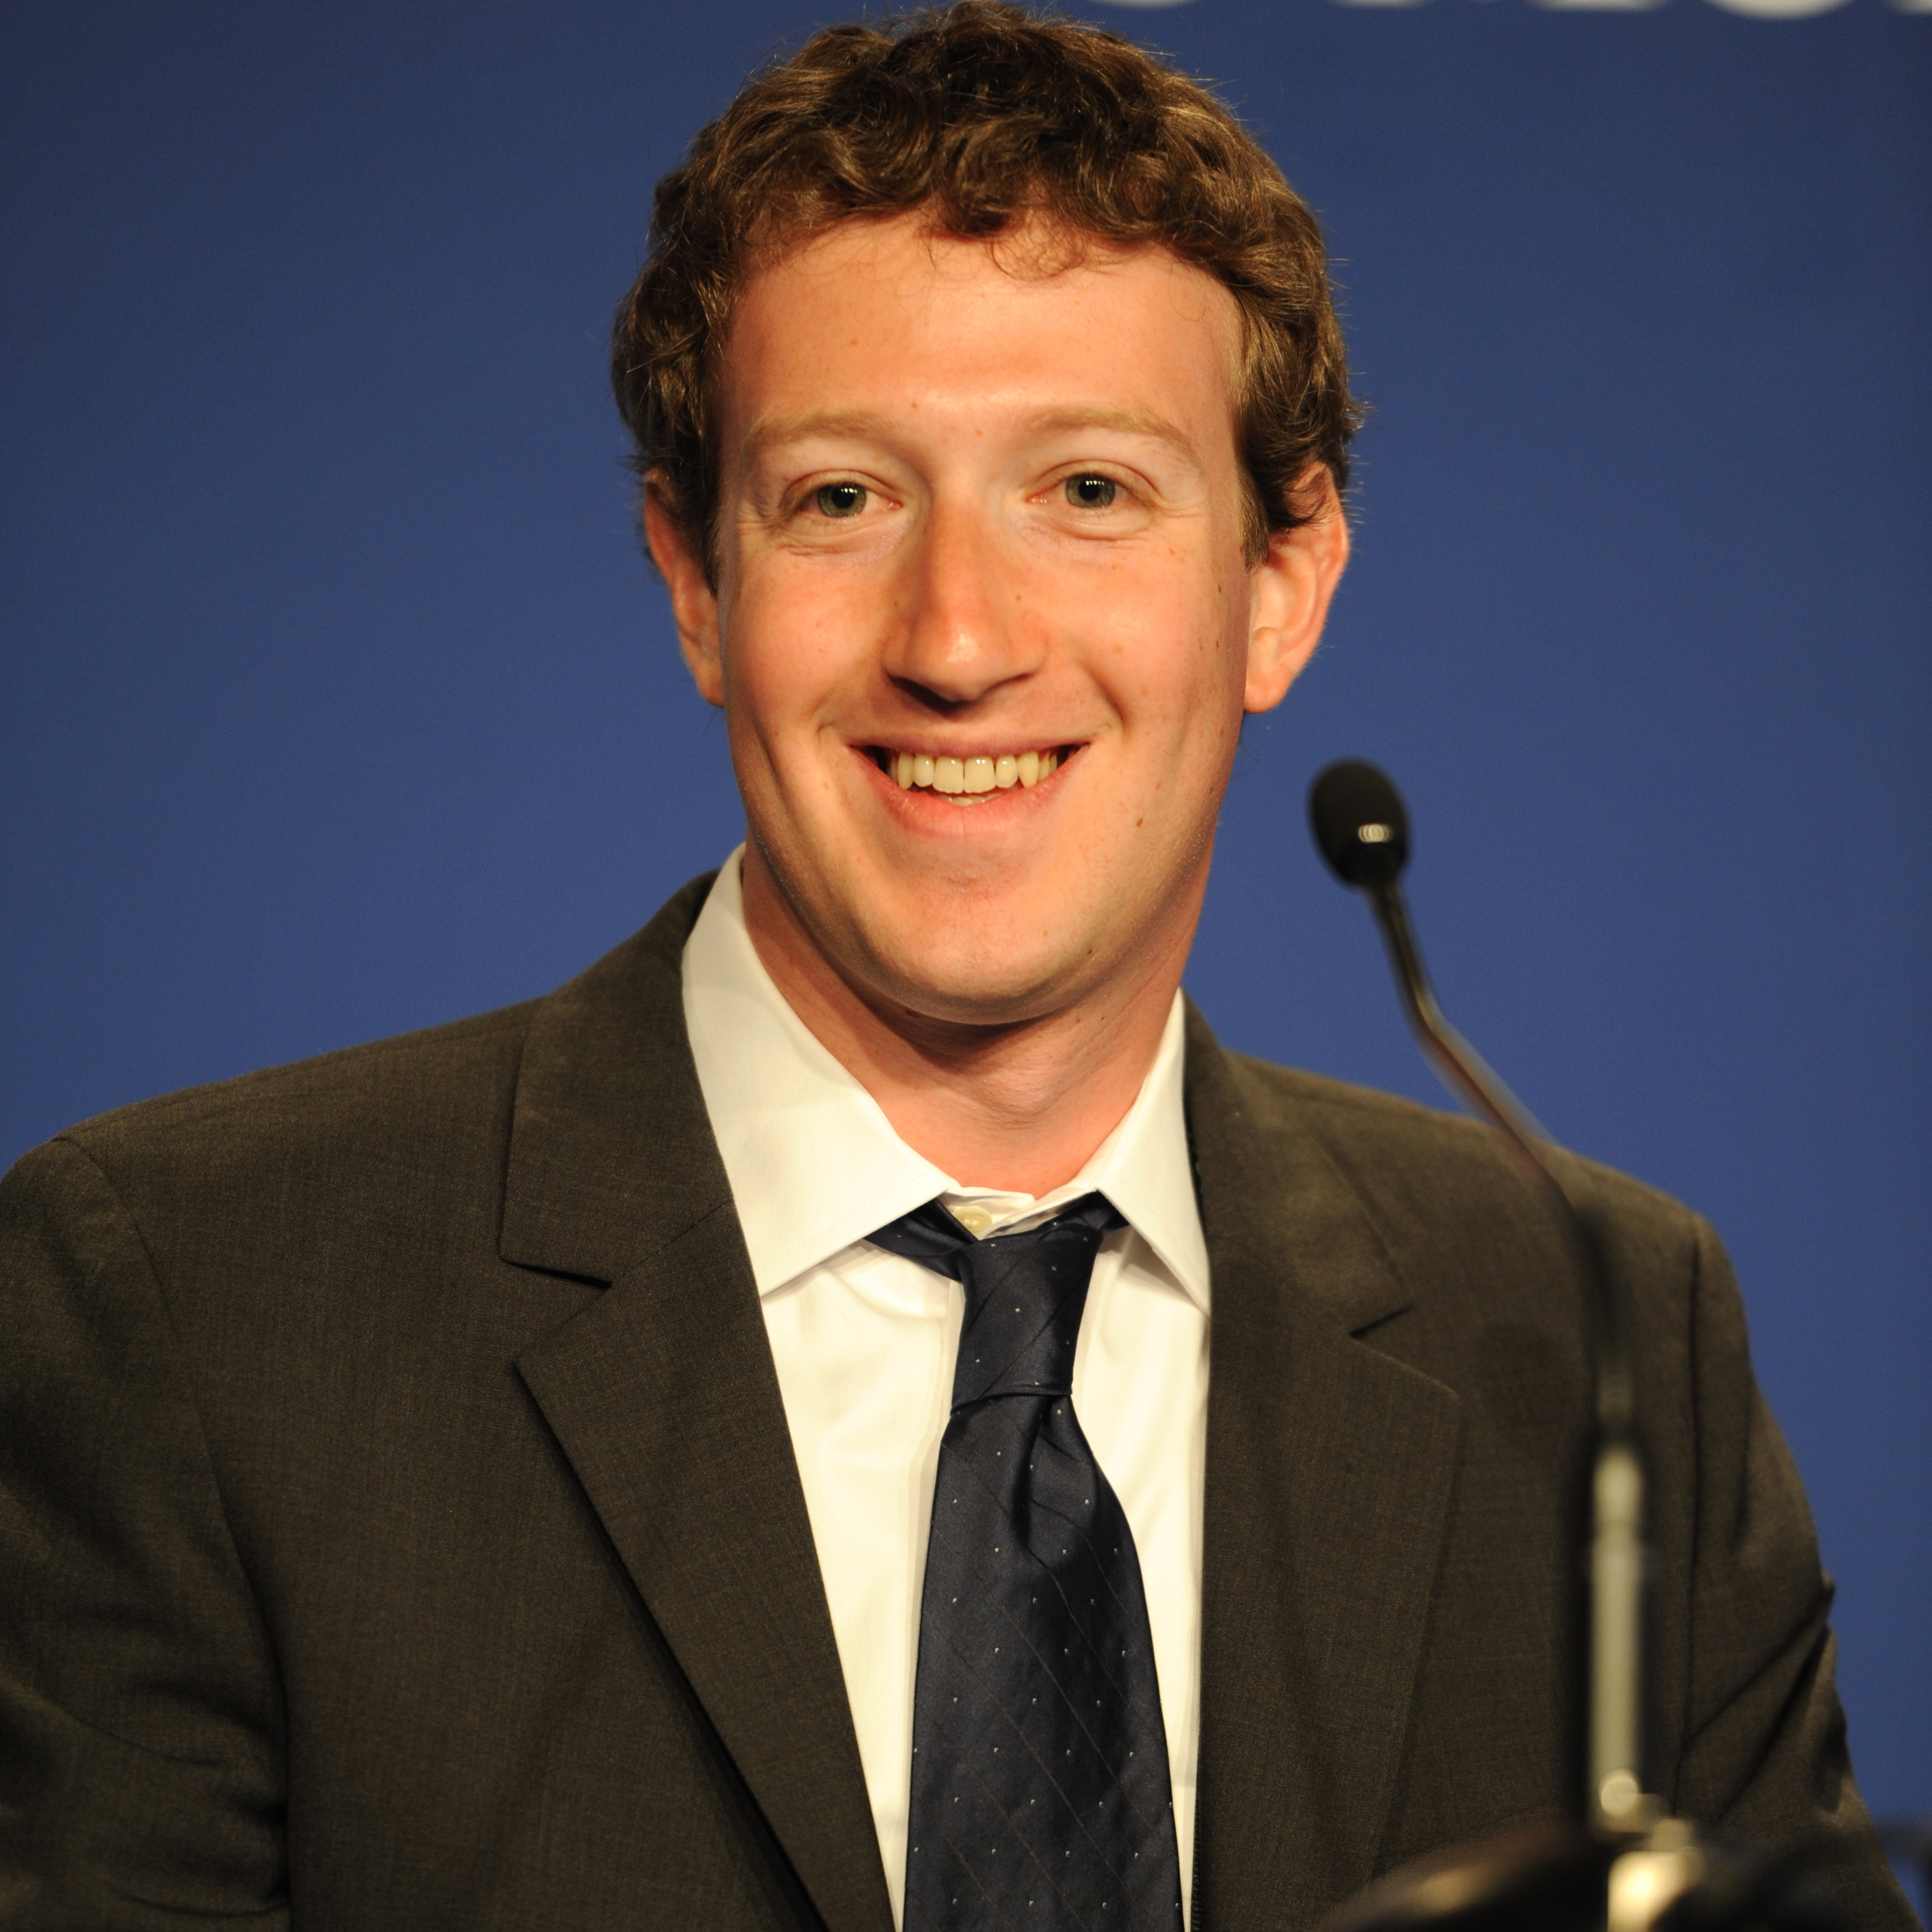 - Mark_Zuckerberg_at_the_37th_G8_Summit_in_Deauville_018_square